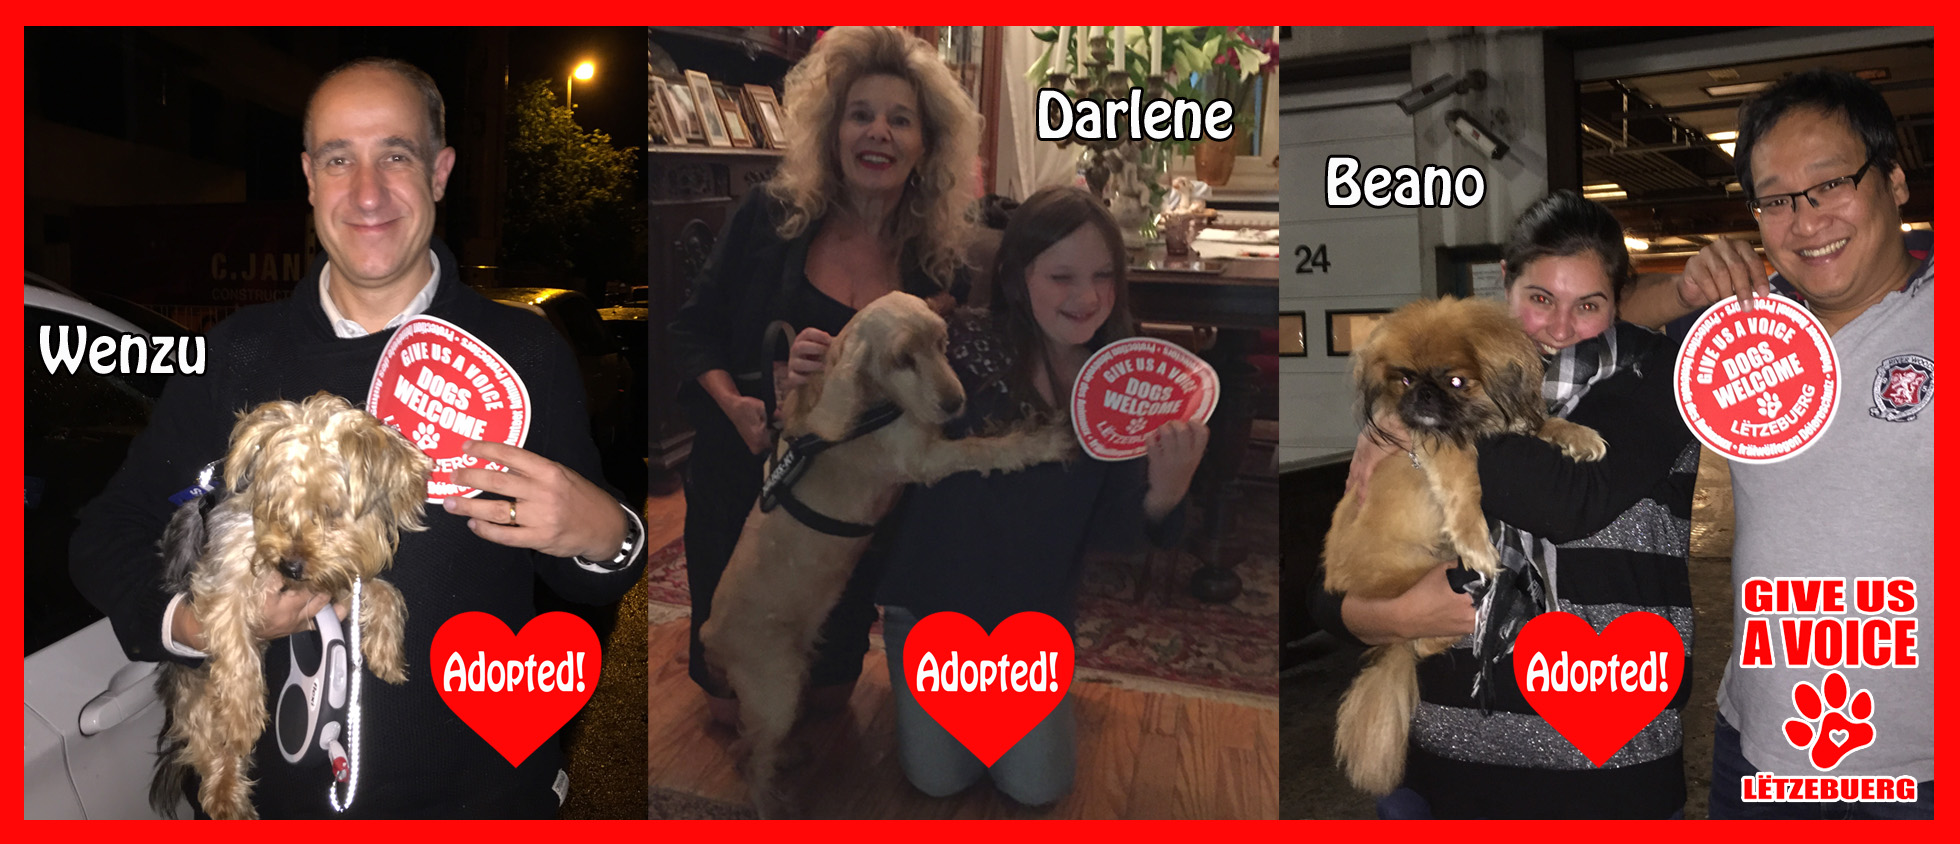 Malta dogs adopted! copy